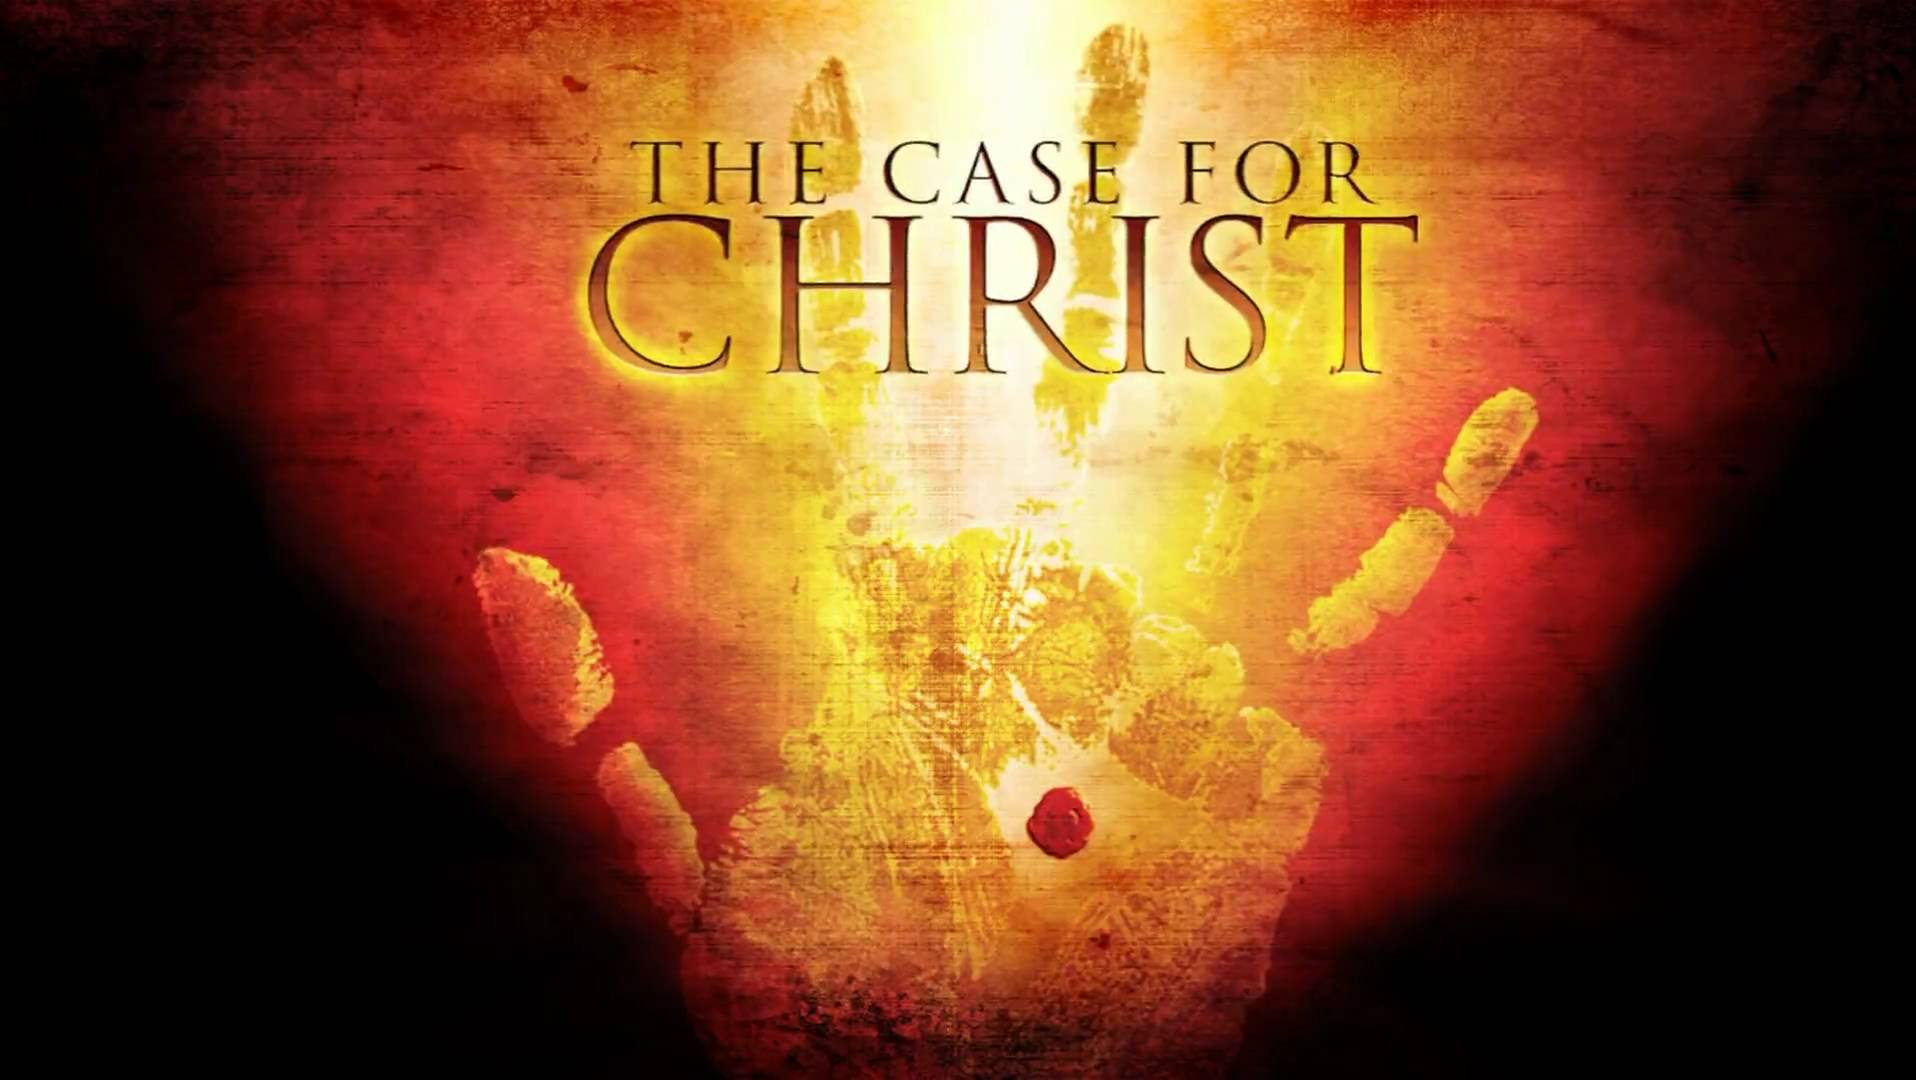 The Case for Christ: quand croyance rencontre athéisme